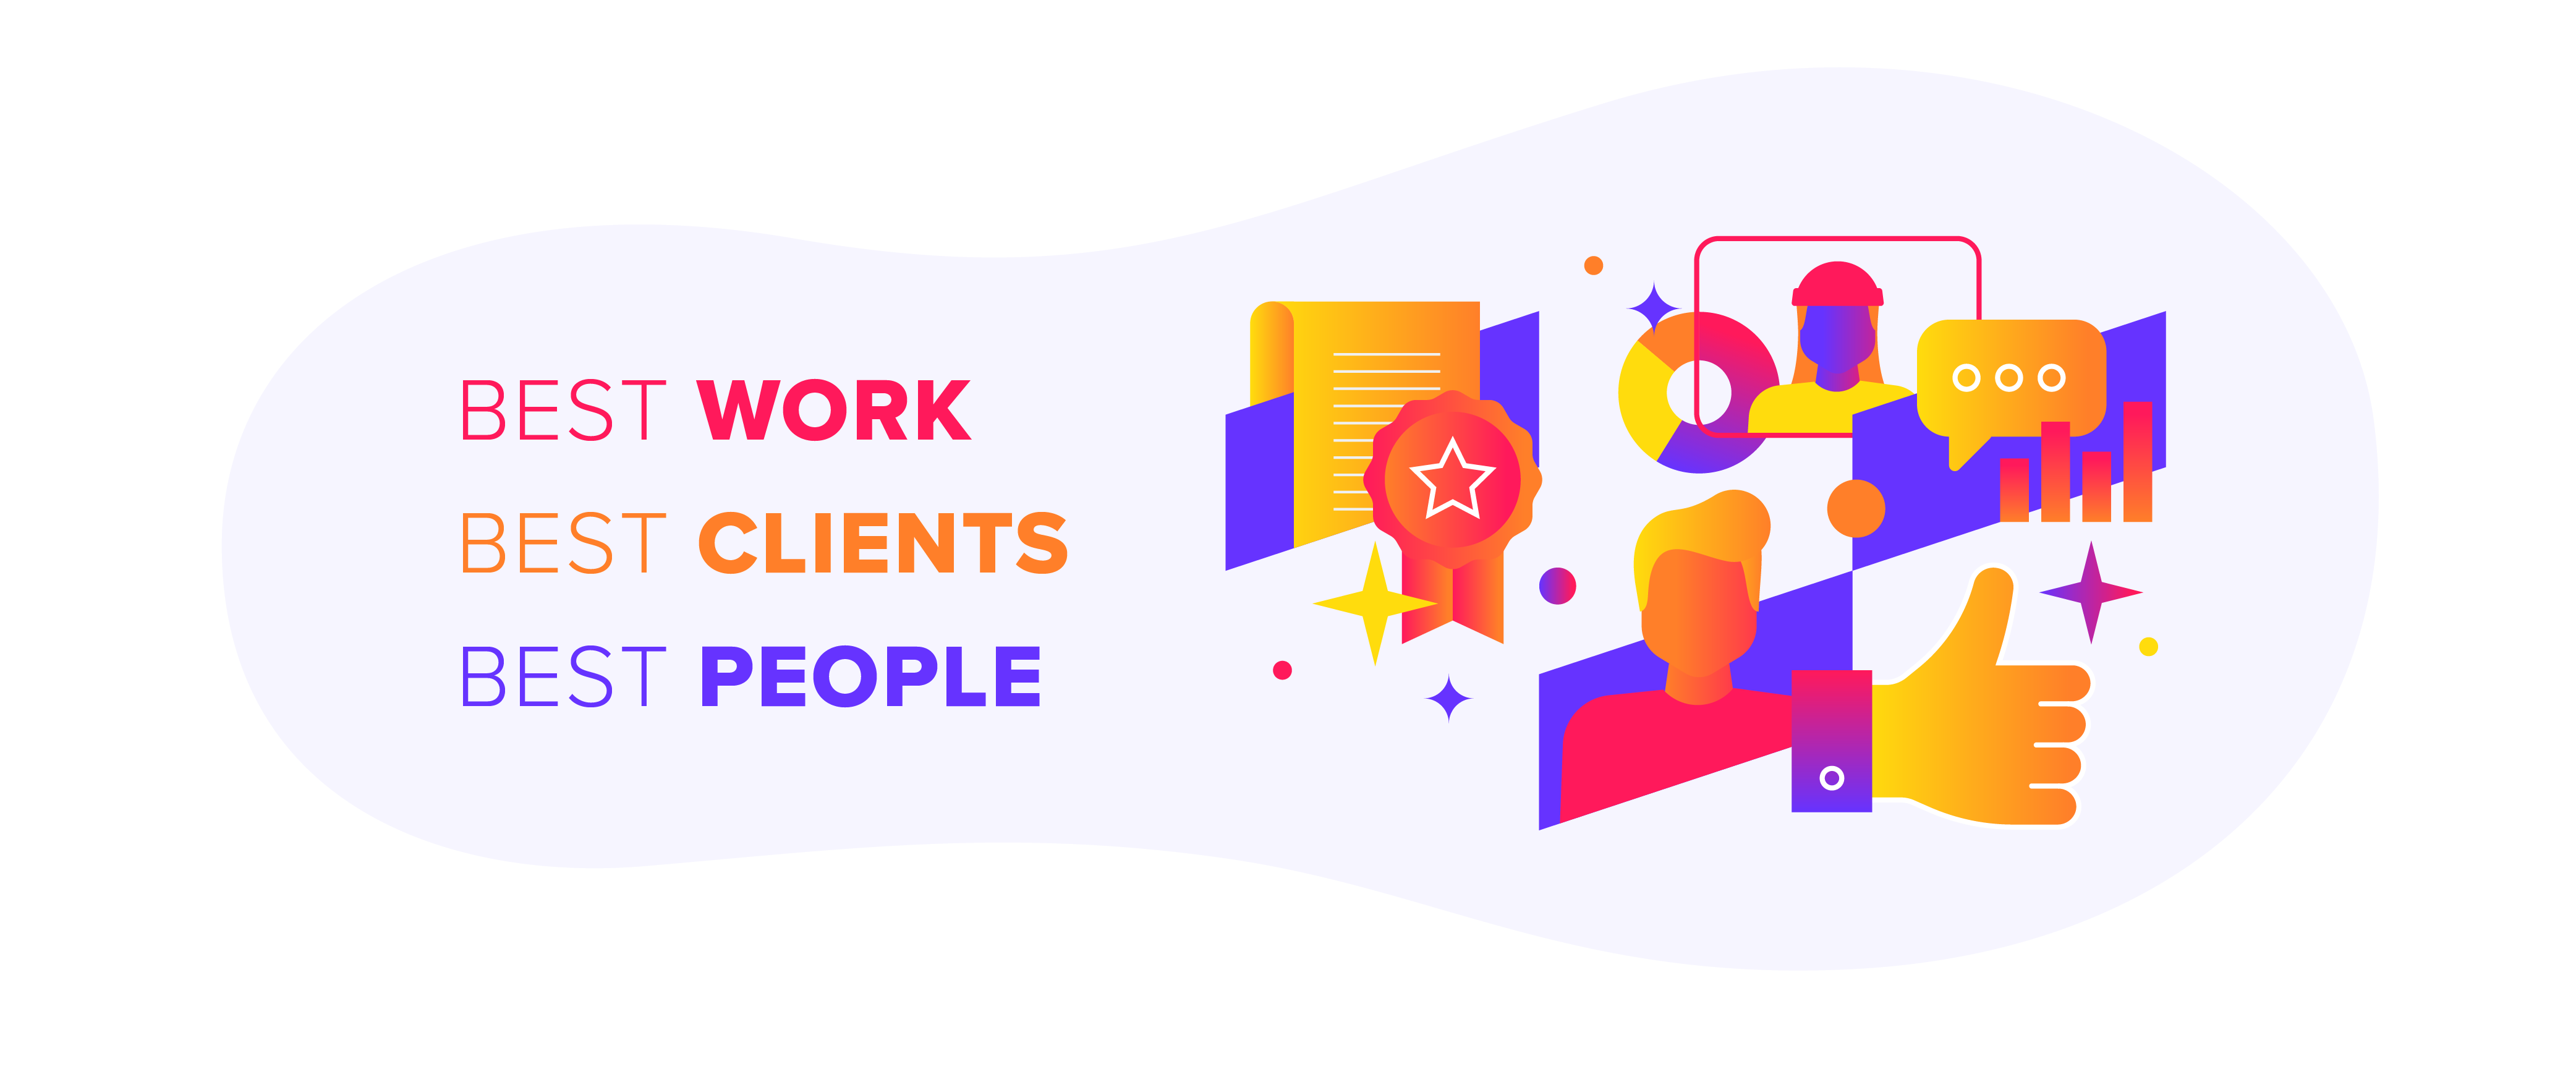 Do the best work for the best clients with the best people